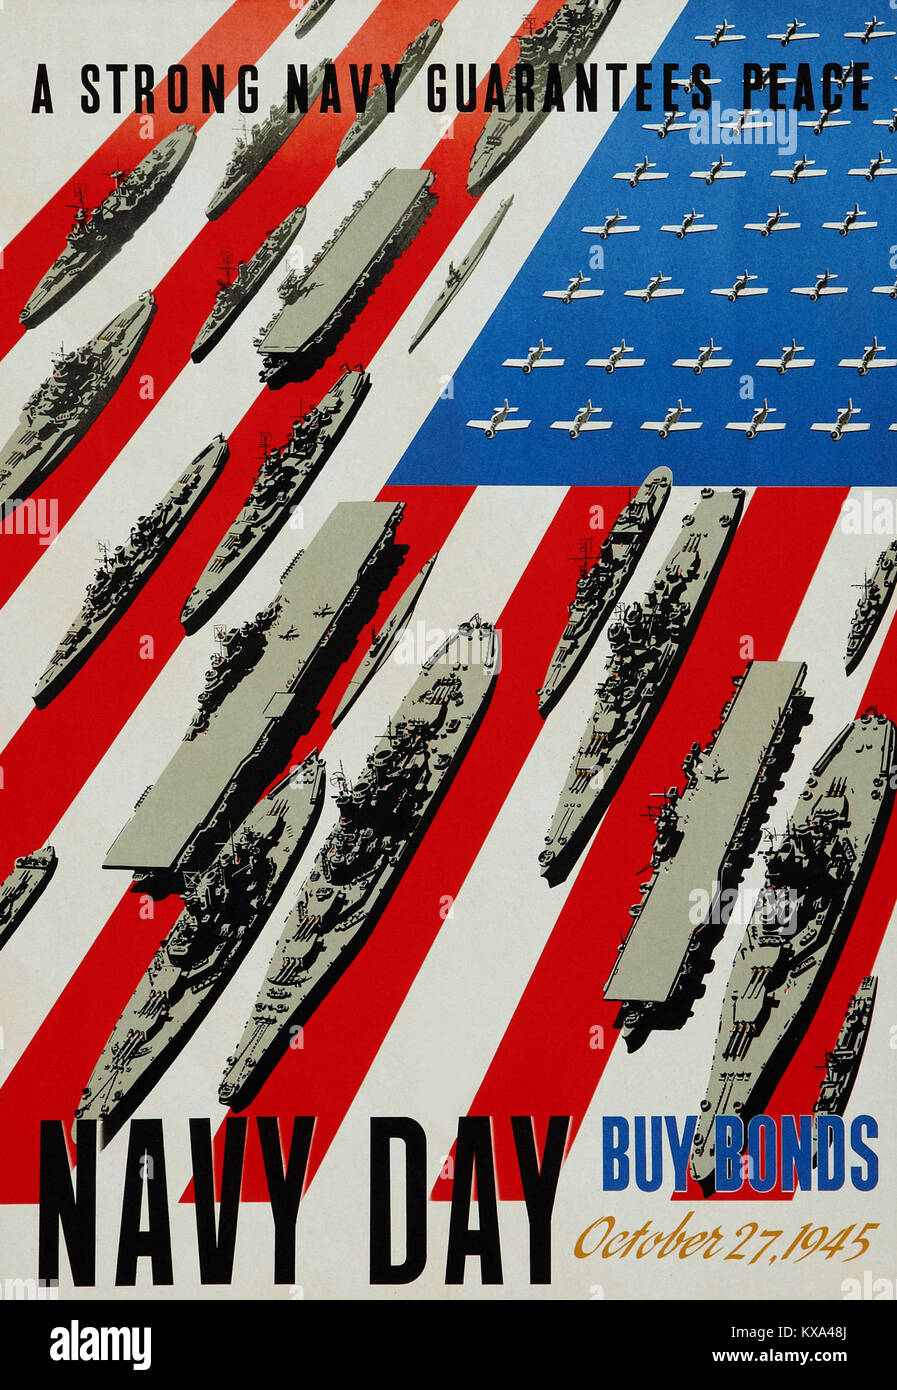 Navy Day October 27, 1945 - Stock Image